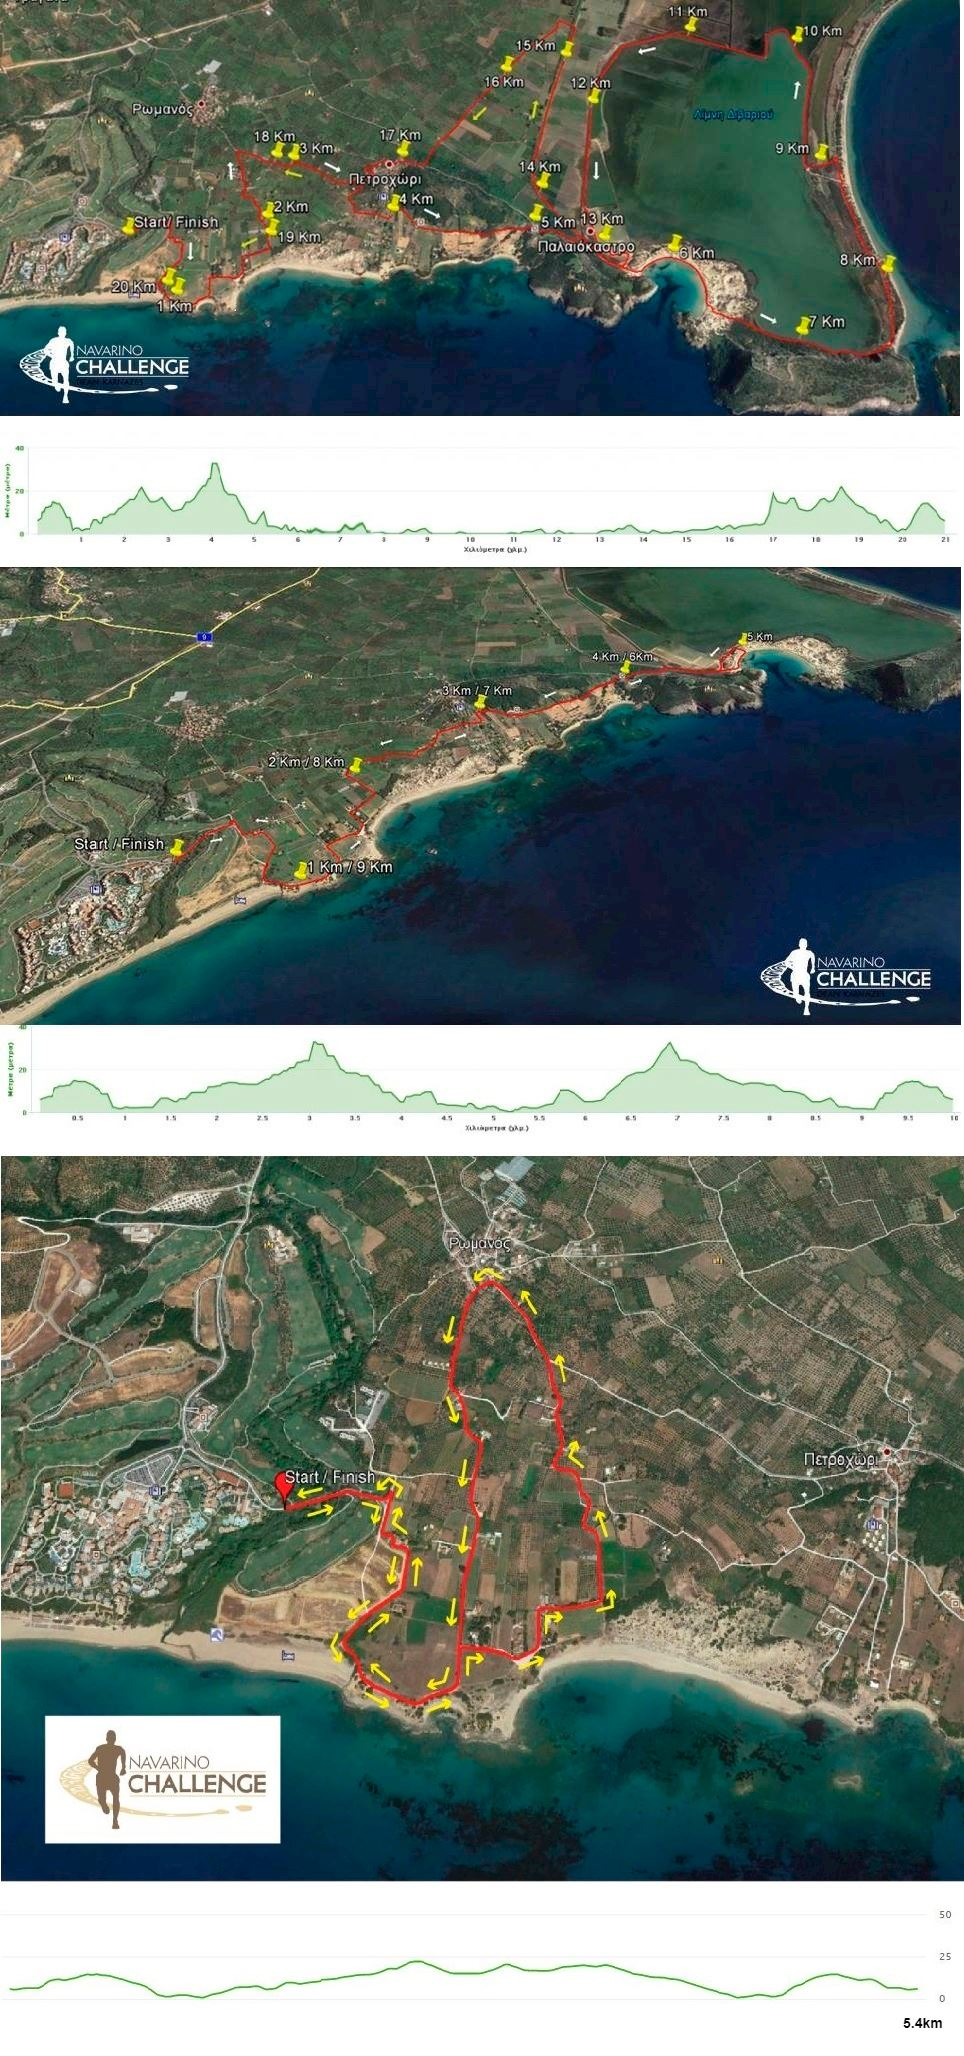 Navarino Challenge Route Map